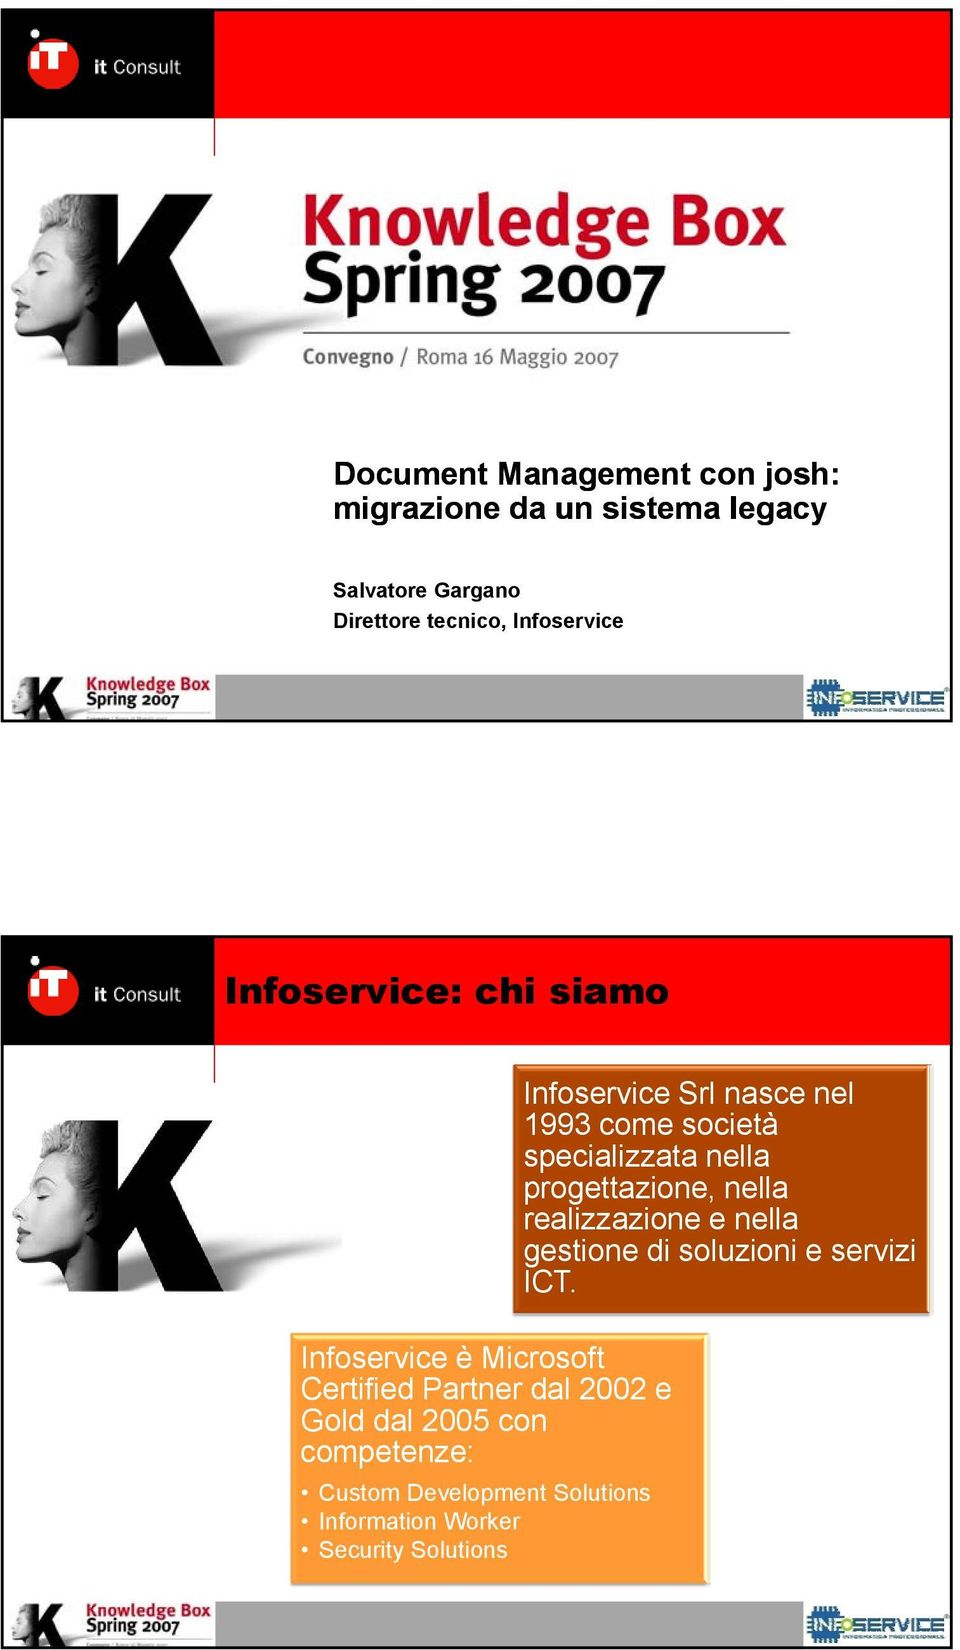 competenze: Custom Development Solutions Information Worker Security Solutions Infoservice Srl nasce nel